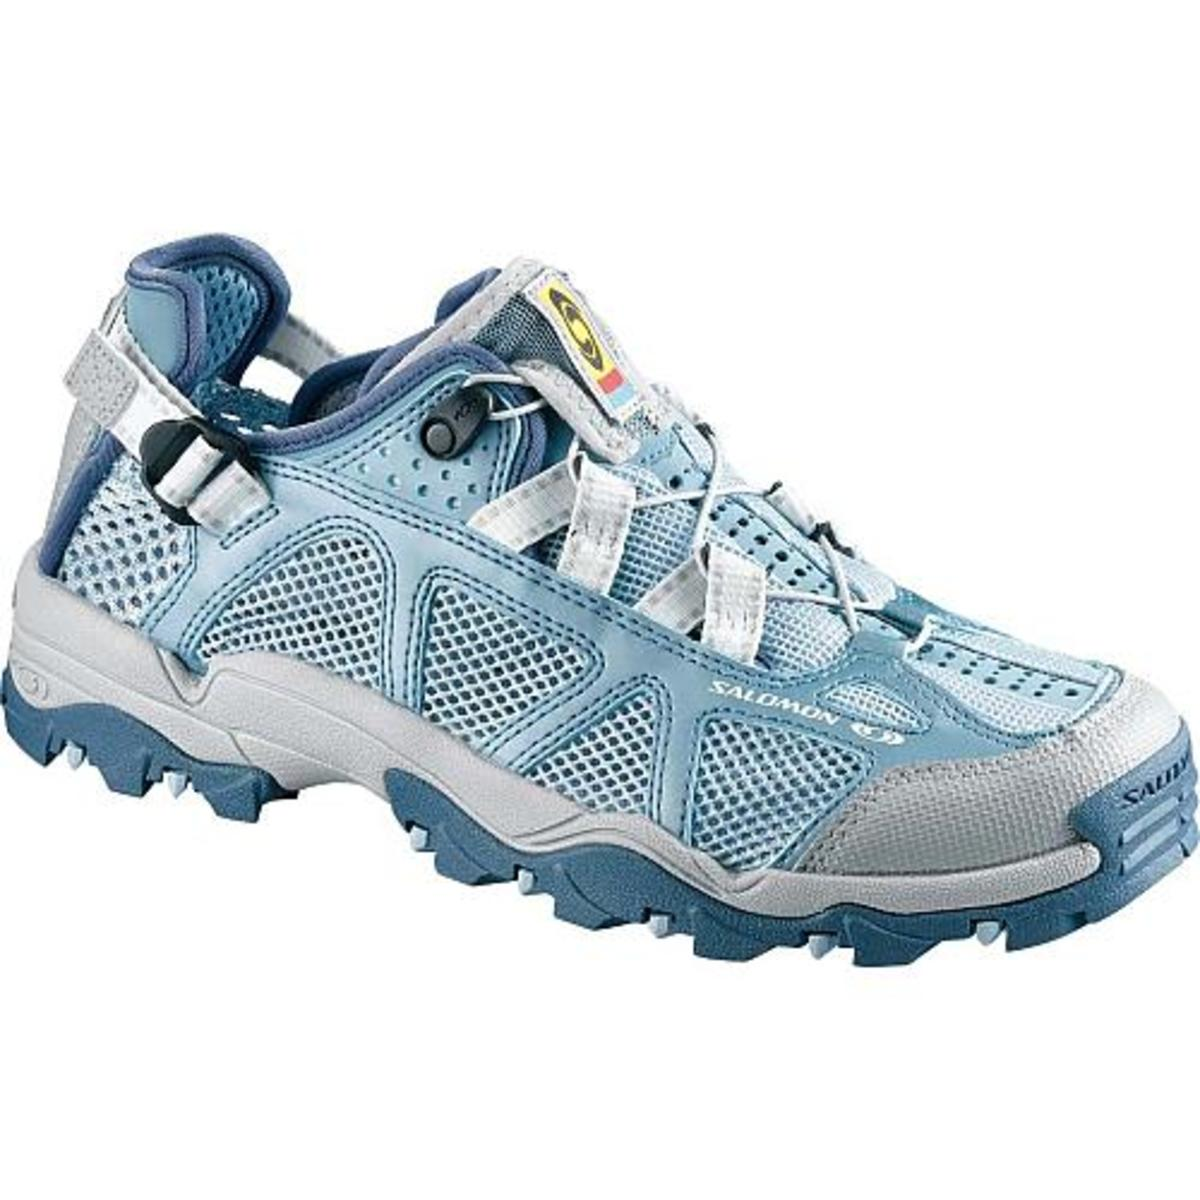 Water Aerobics Sneaker in blue and white